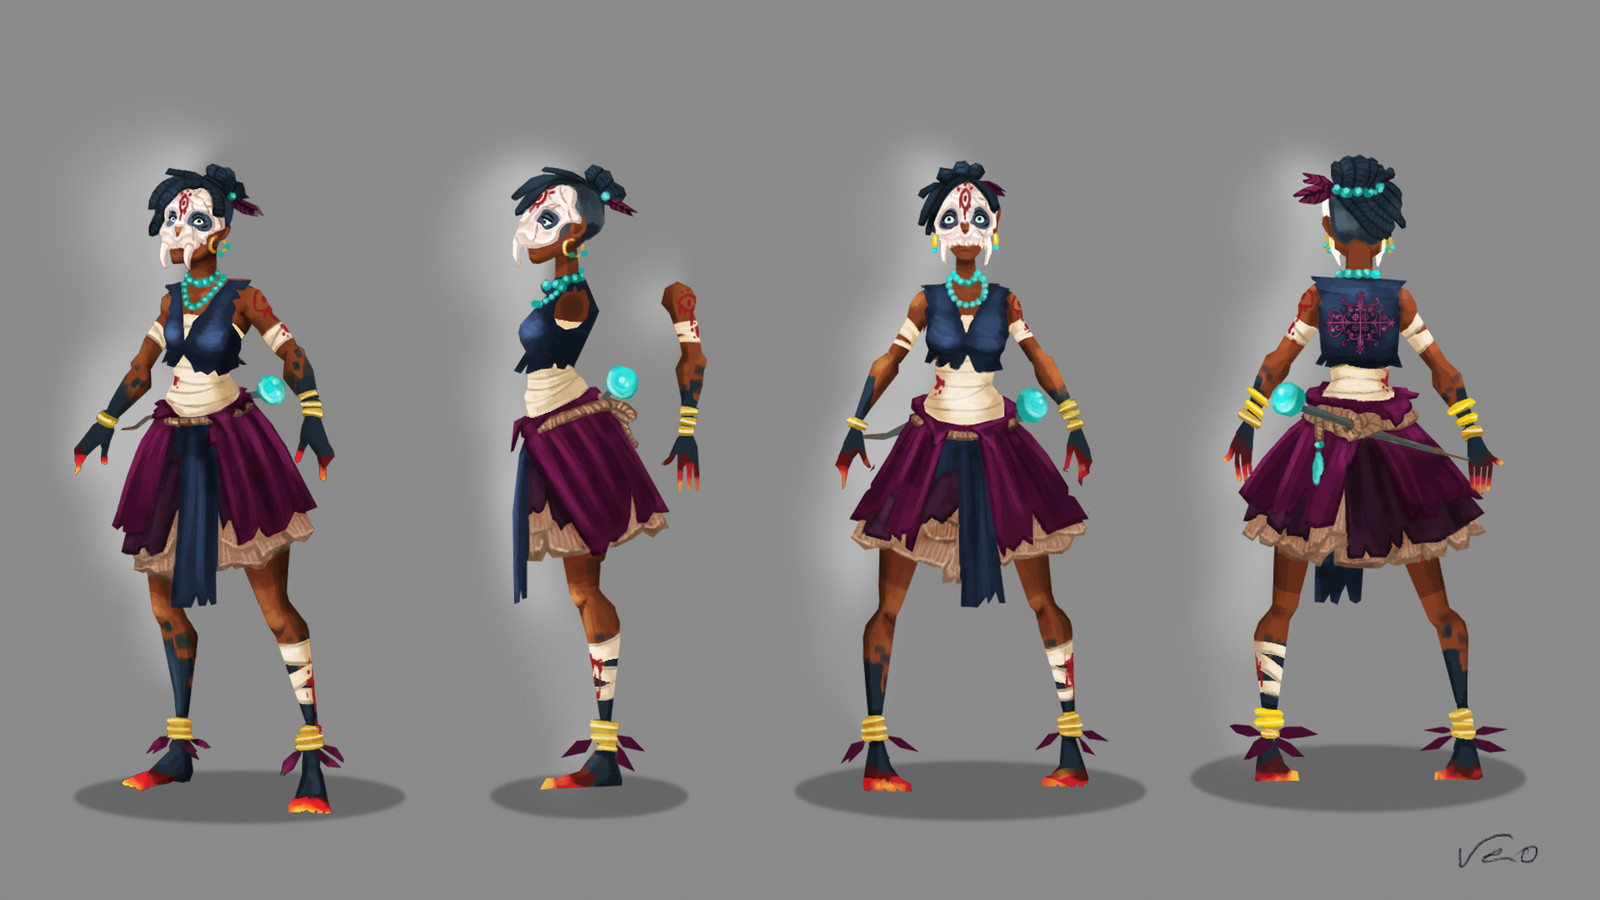 Character concept art. Migou was the main character of the game Soul Food. She's the rebelle apprentice of the voodoo god Papa Legba. In the game, she tries to escape from his wicked claws and find refuge in a church.